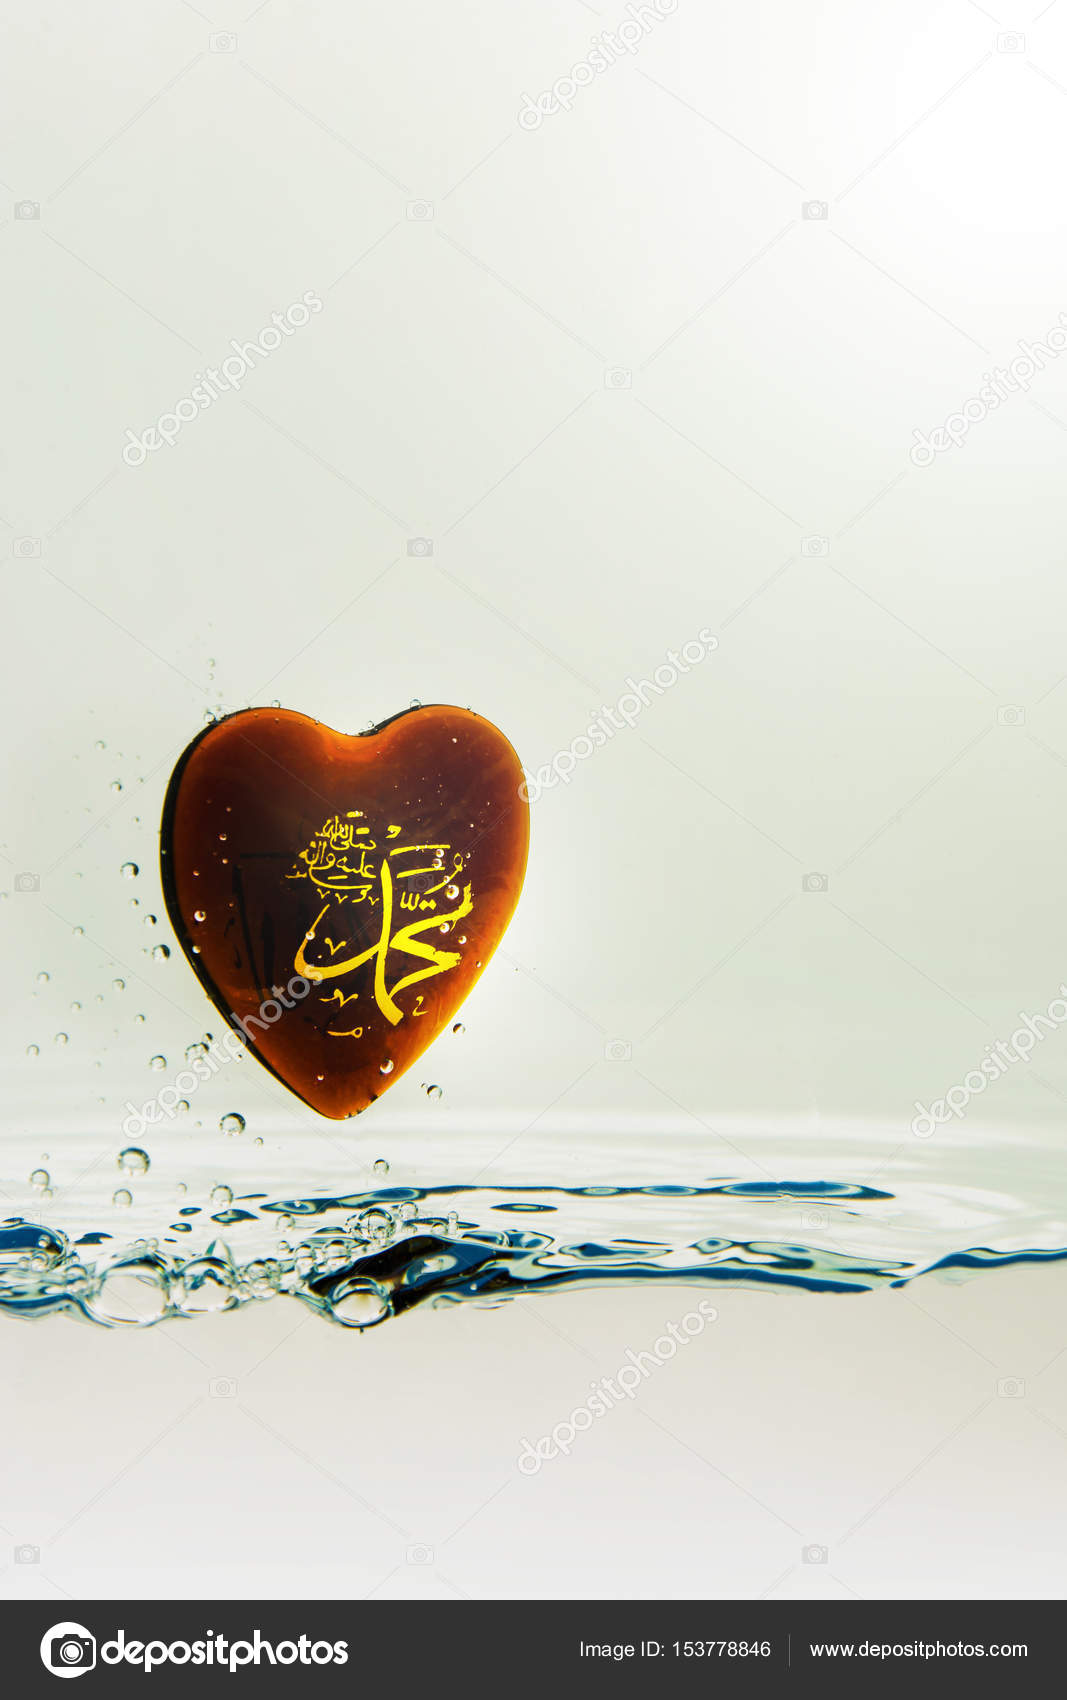 Muhammad Prophet Of Islam Symbol Water Splash With Bubbles Of